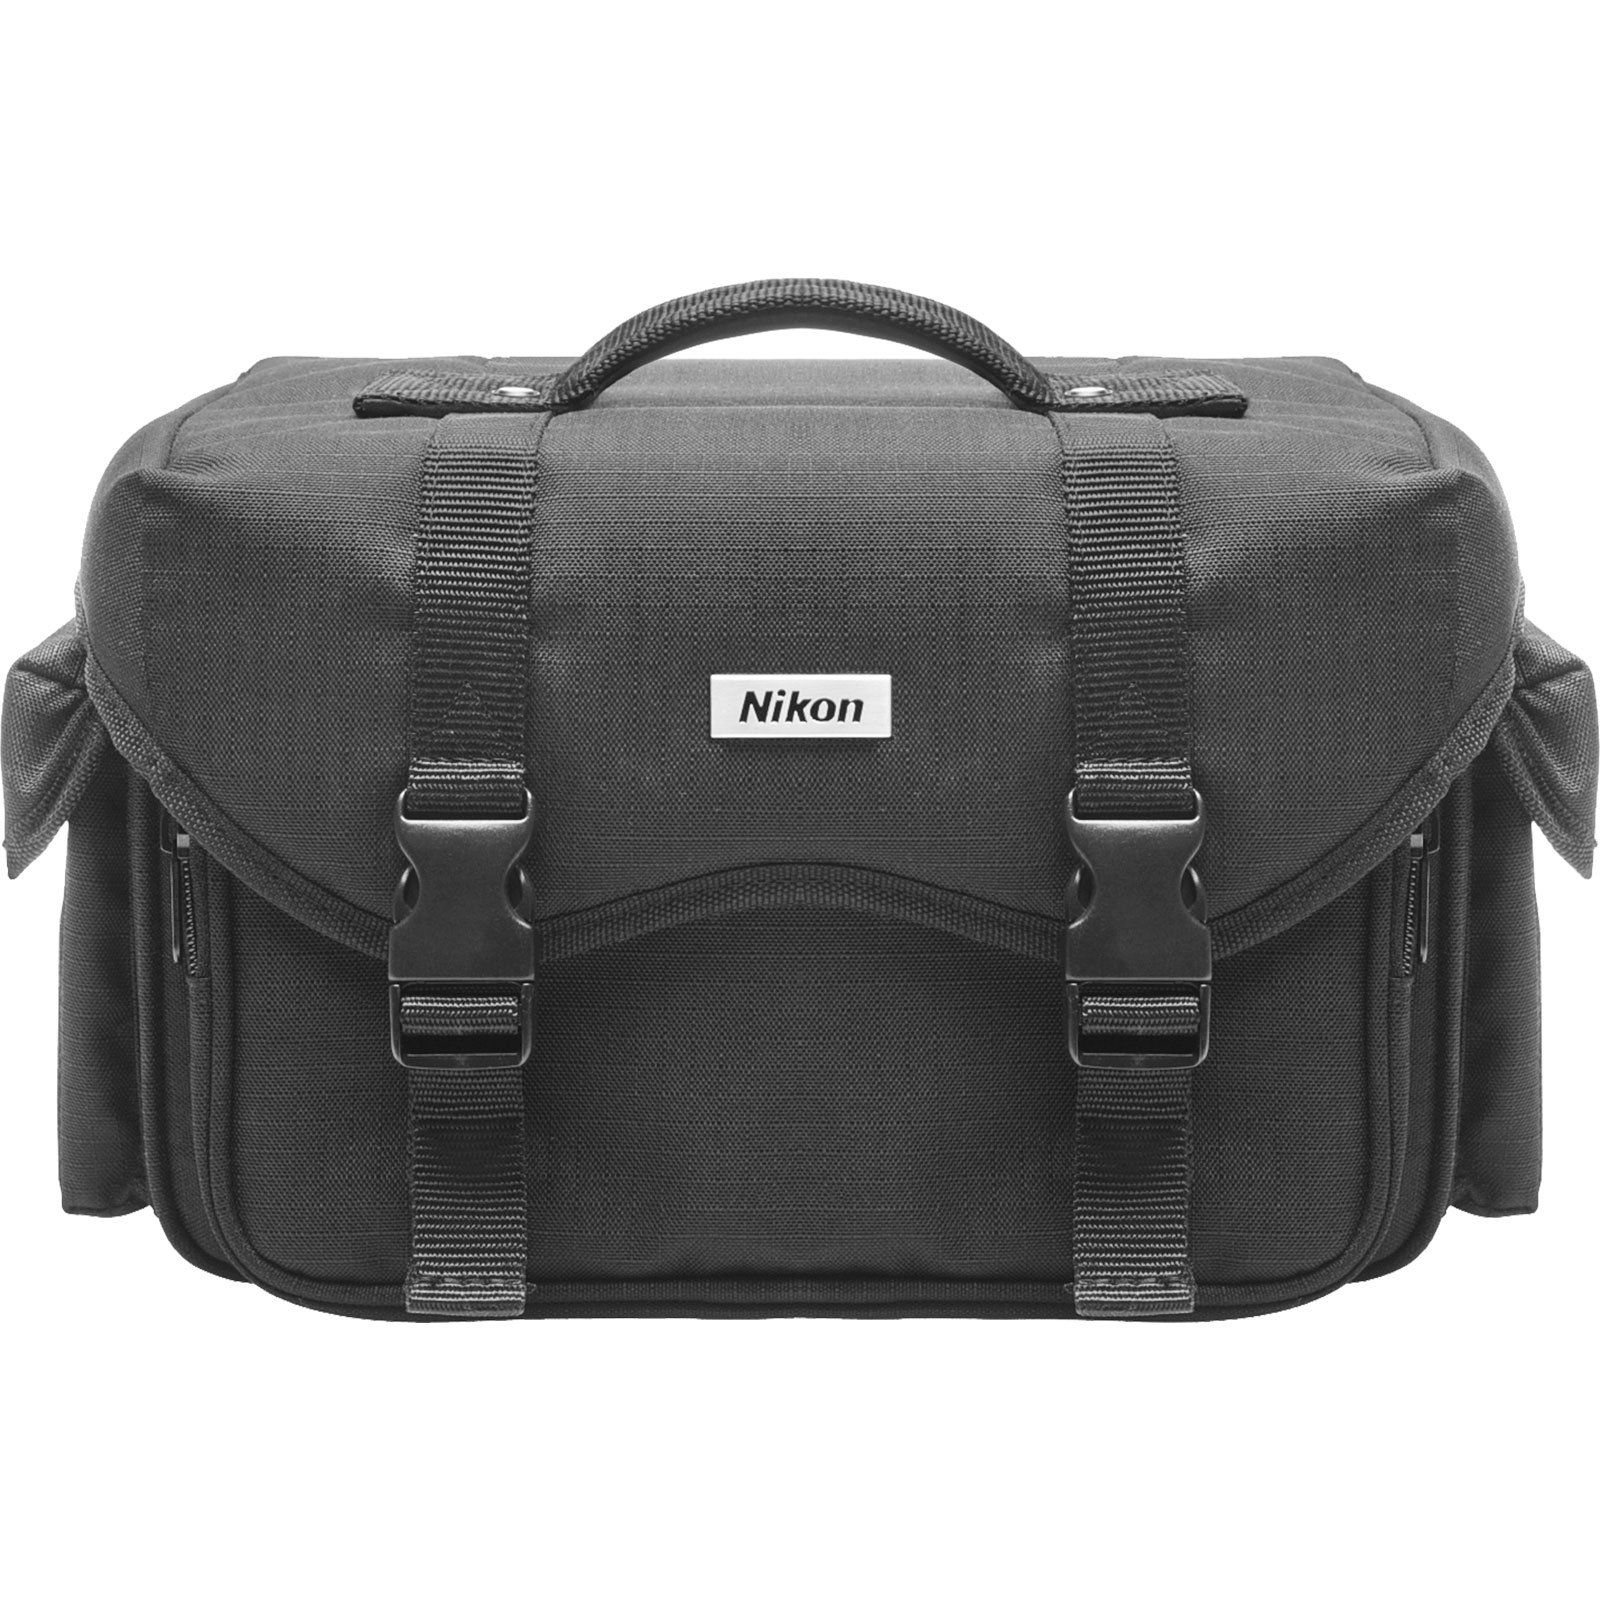 Nikon 5874 Digital SLR Camera Case - Gadget Bag for D4s, D810, D800, D610, D7100, D7000, D5300, D5200, D5100, D3300, D3200, D3100